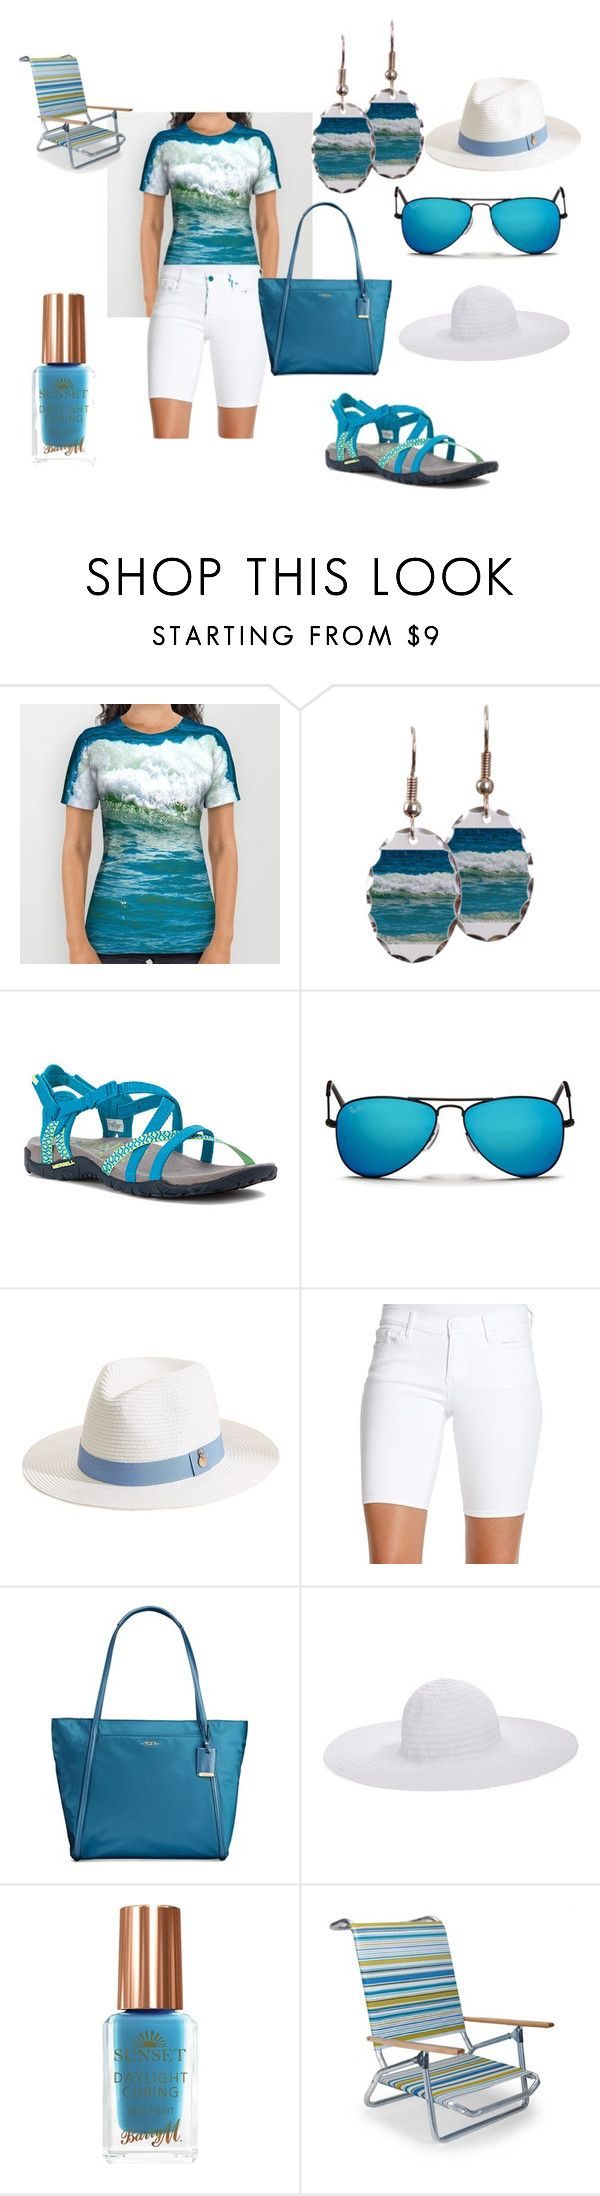 """Jump On In Beach Style"" by momadventurist on Polyvore featuring Merrell, Ray-Ban, Melissa Odabash, Jessica Simpson, Tumi, August Hat, Barry M, Telescope Casual, women's clothing and women"